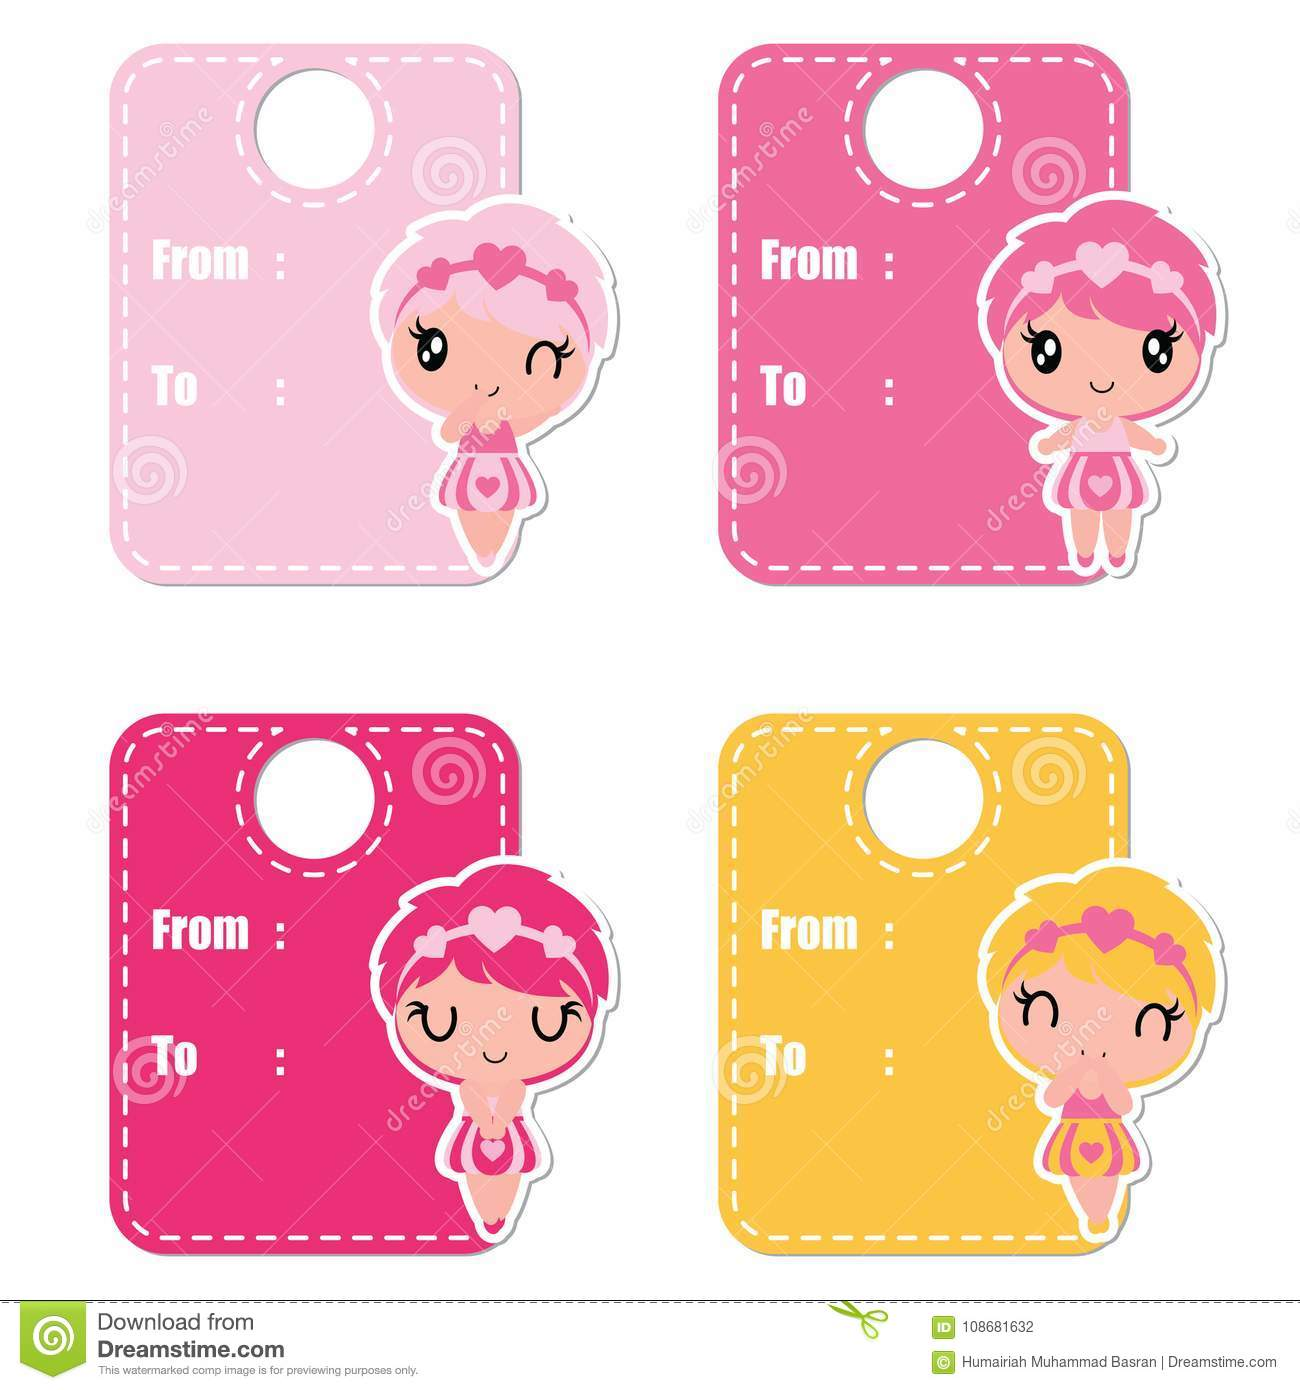 Cute Colorful Girls Cartoon Illustration For Valentine Gift Tags